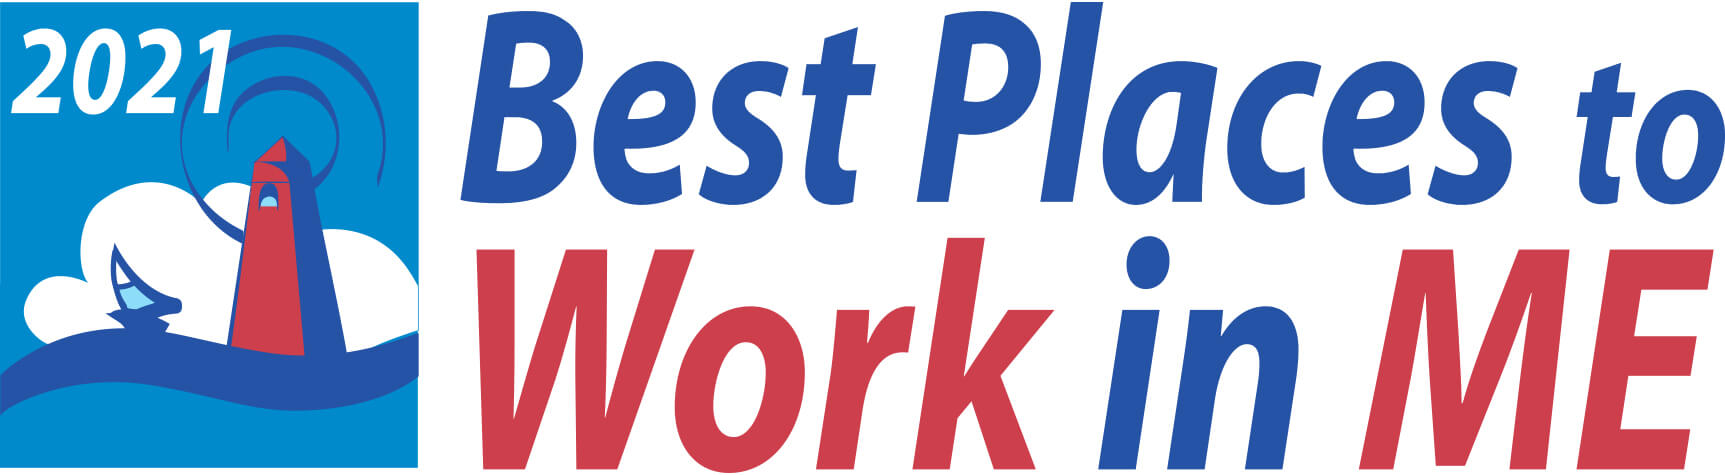 2021 best place to work - best insurance angecy to work for in wells maine